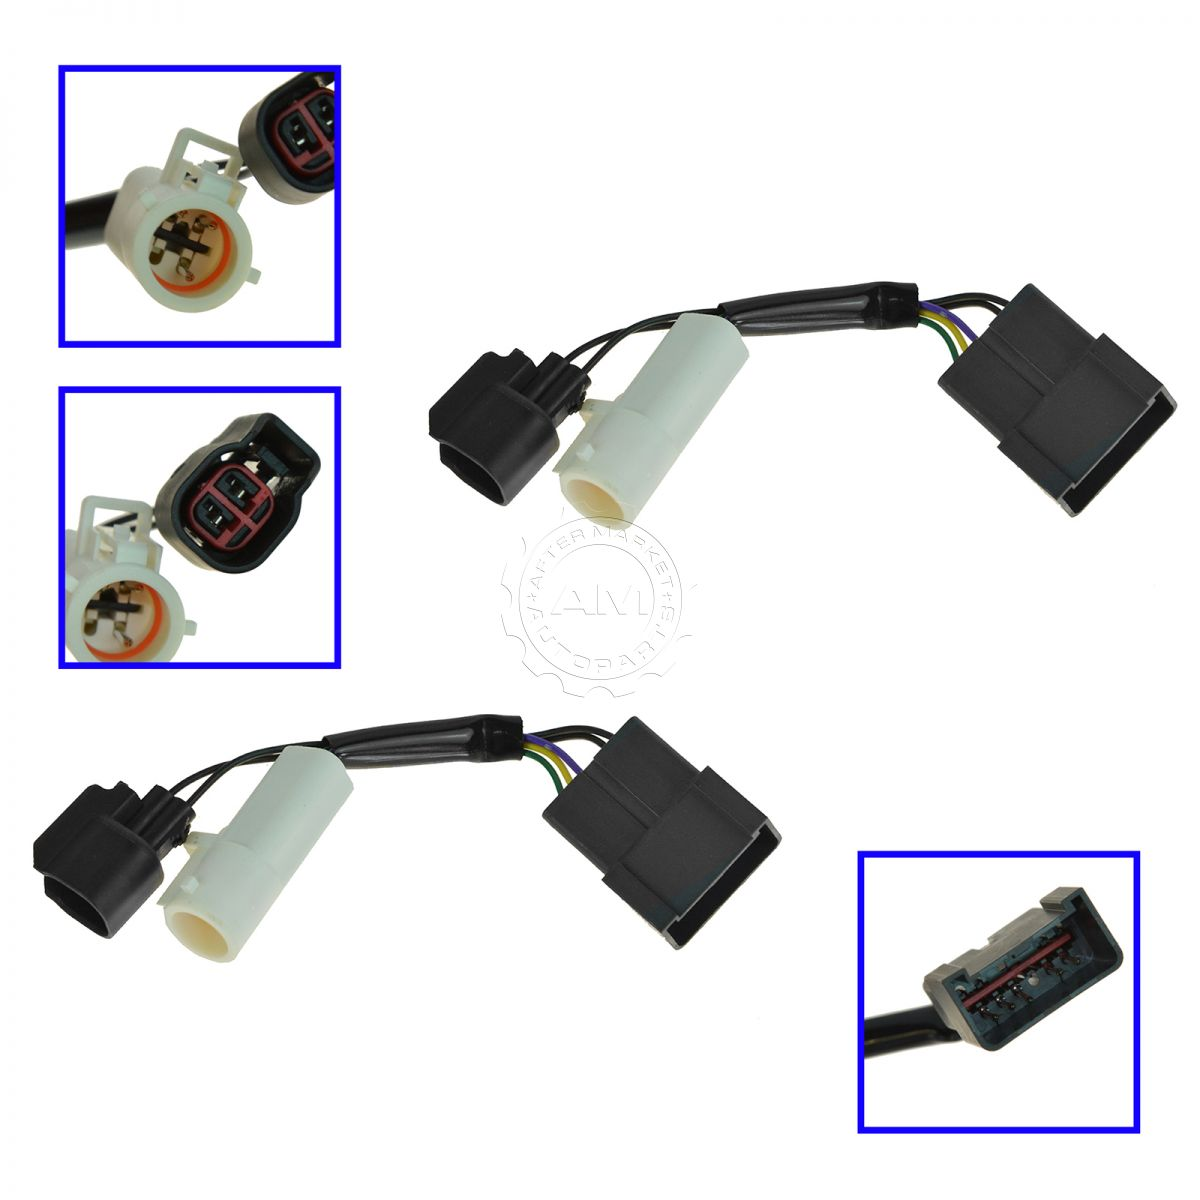 hight resolution of mirrors power heated upgrade harness adapter lh rh pair set for 00 01 excursion